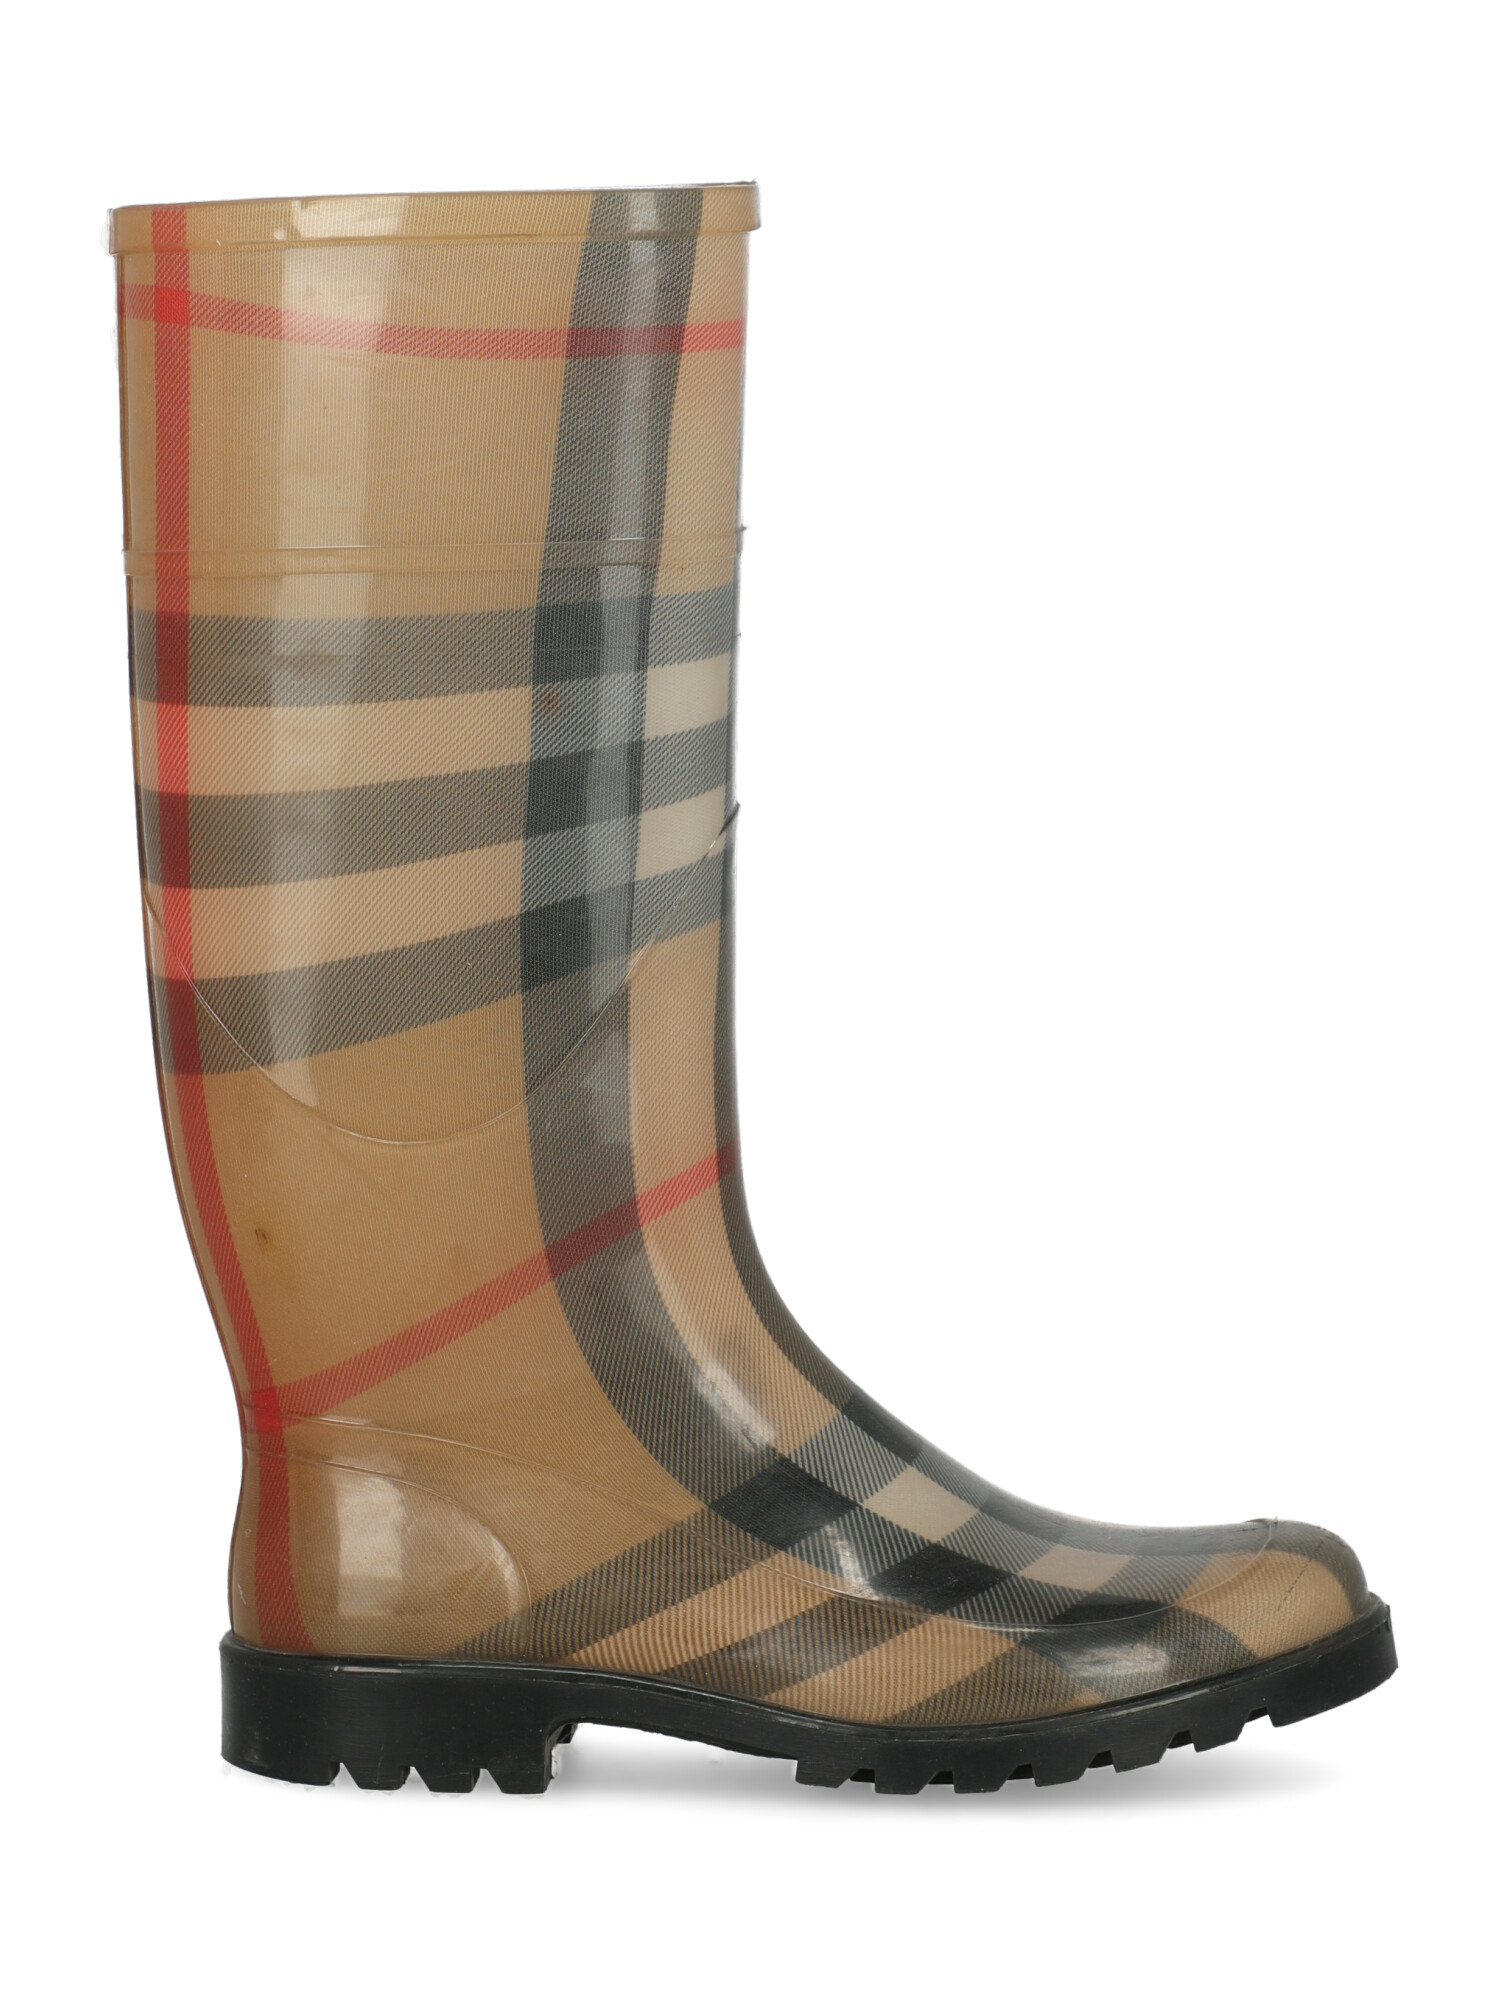 Pre-owned Burberry Shoe In Black, Camel Color, Red